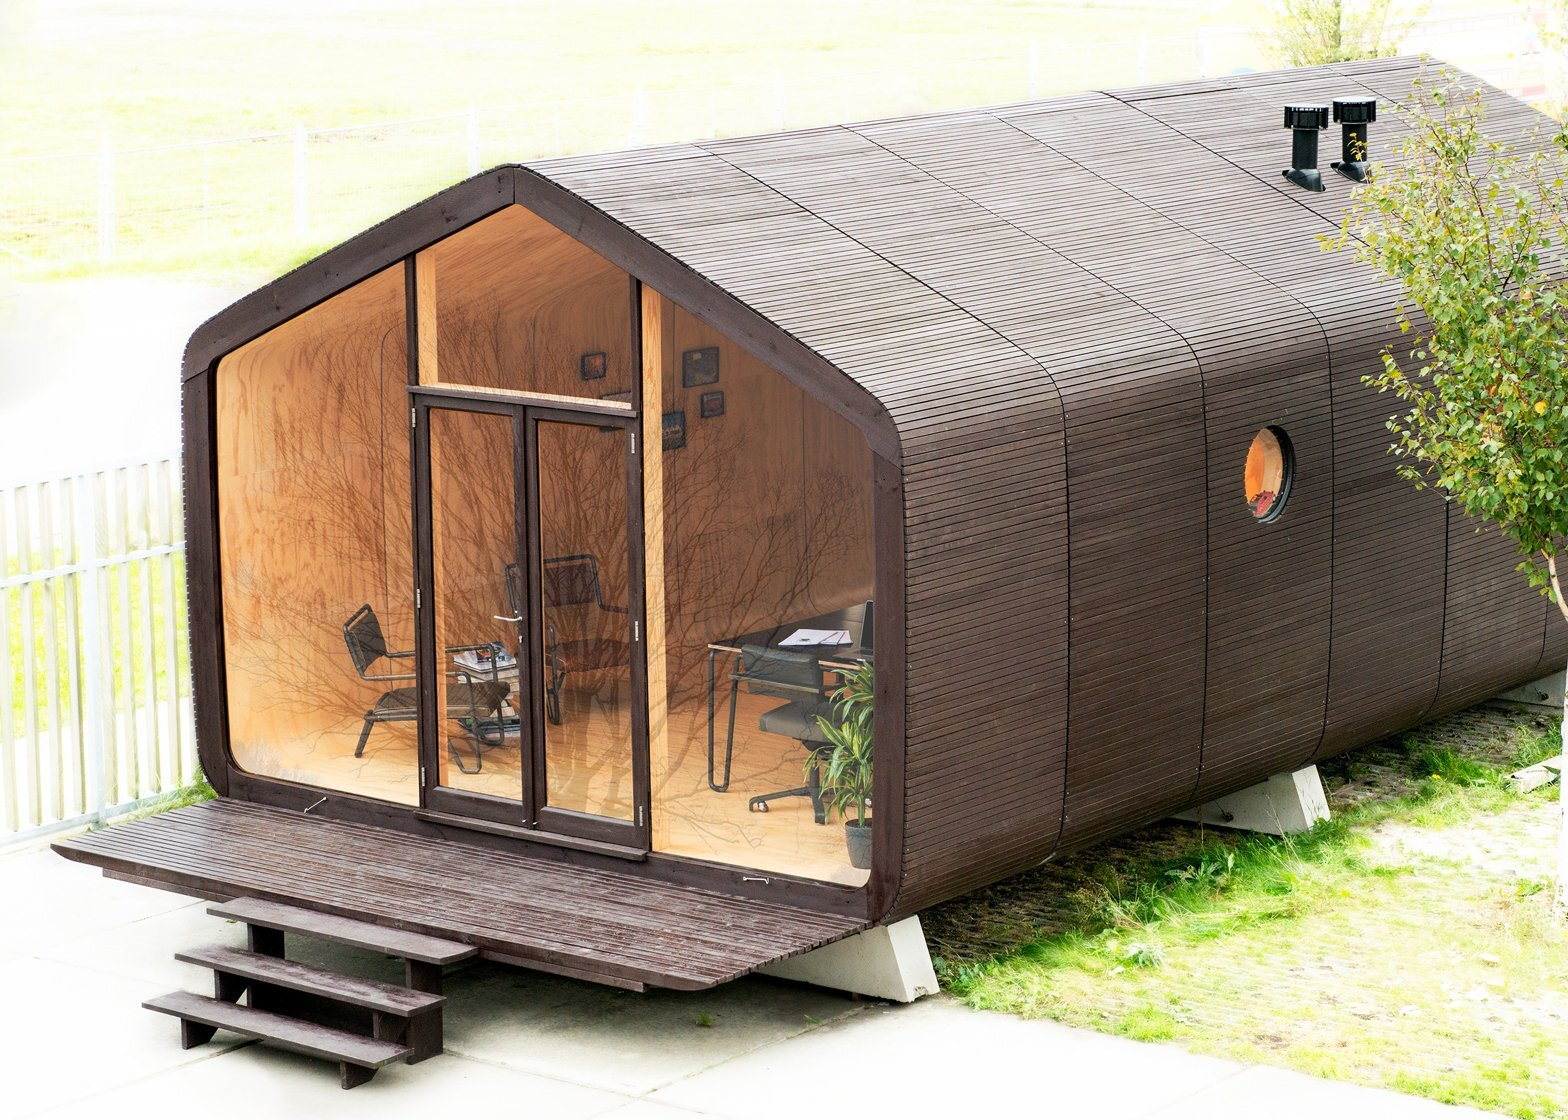 The LoftCube Takes Stylish Prefab Living To New Heights